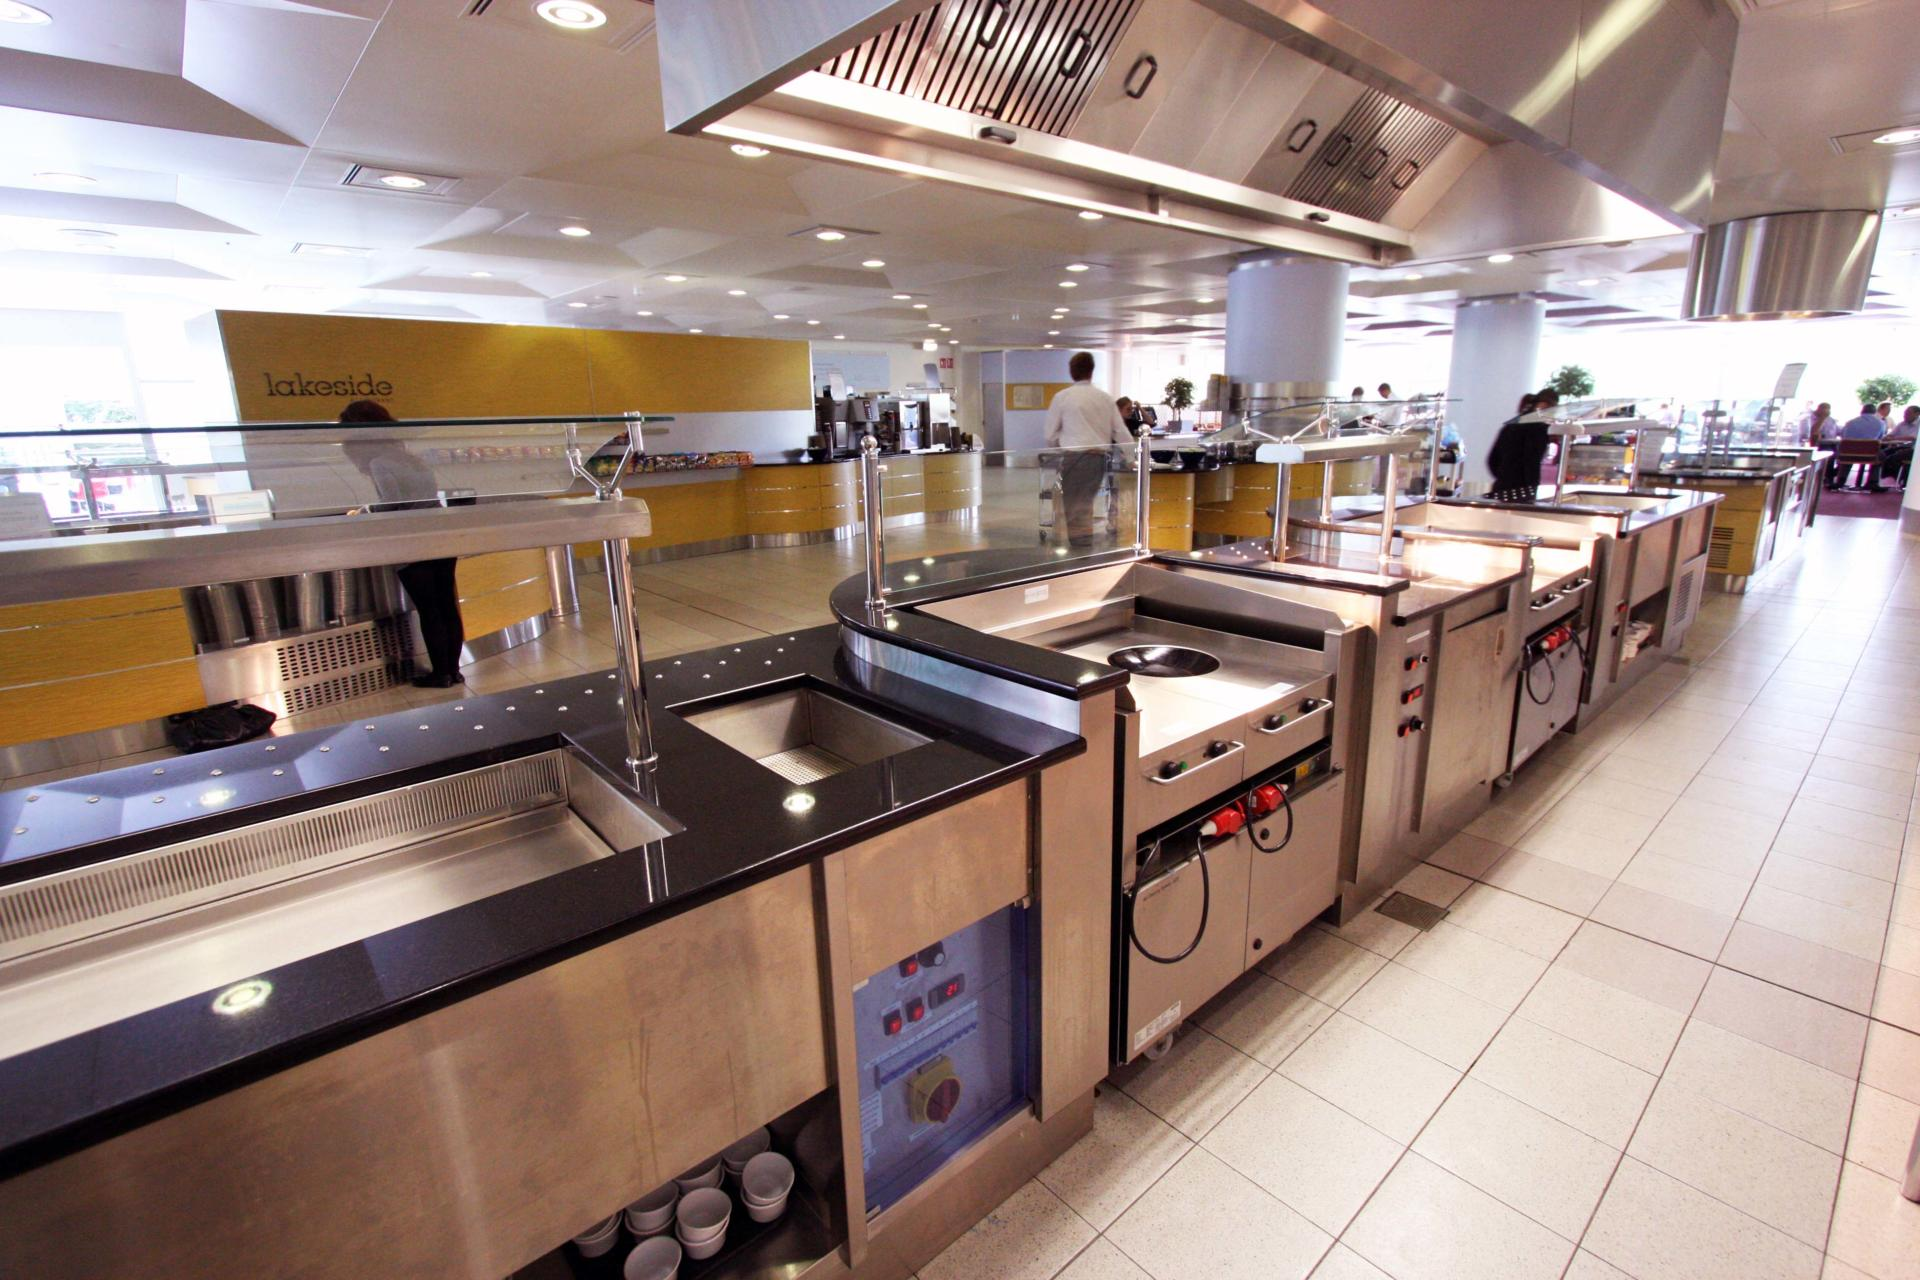 nationwide_swindon_staff restaurant_servery (10)